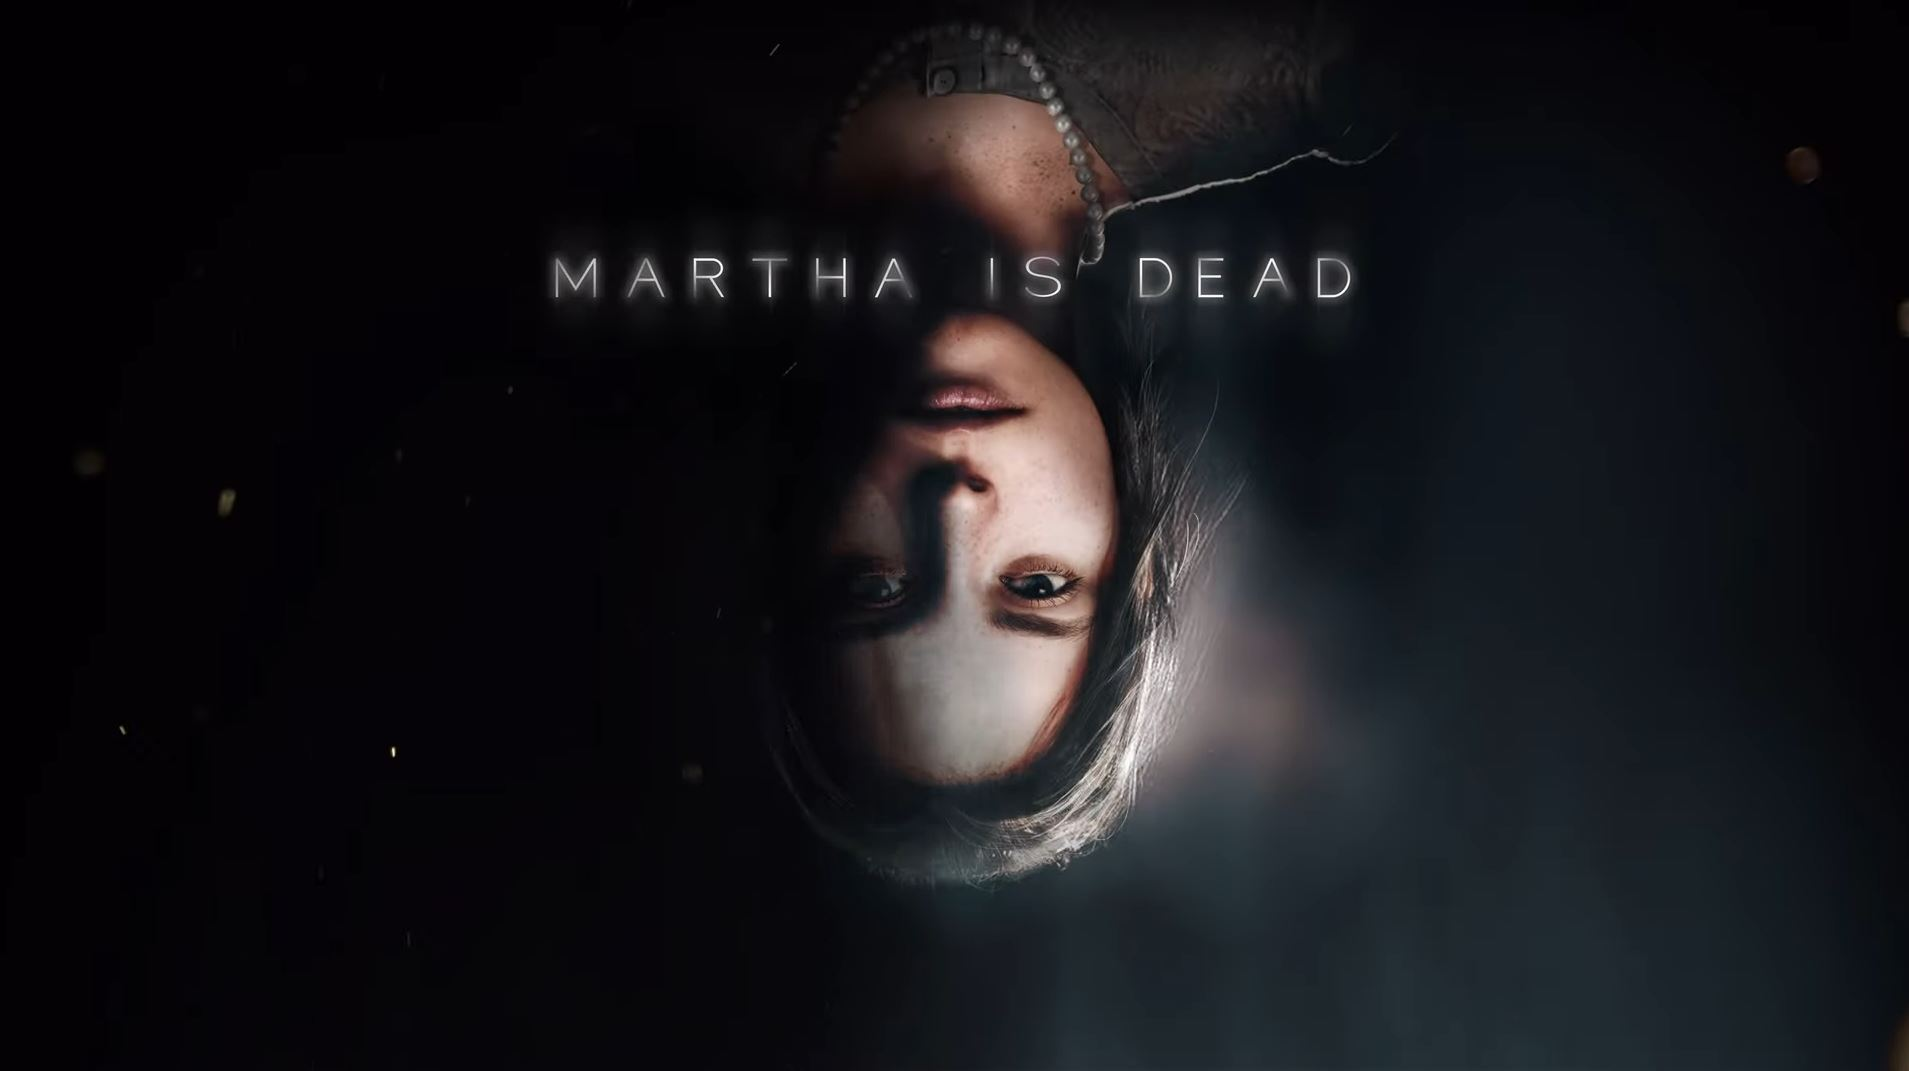 martha-is-dead-ps5-ps4-news-reviews-videos